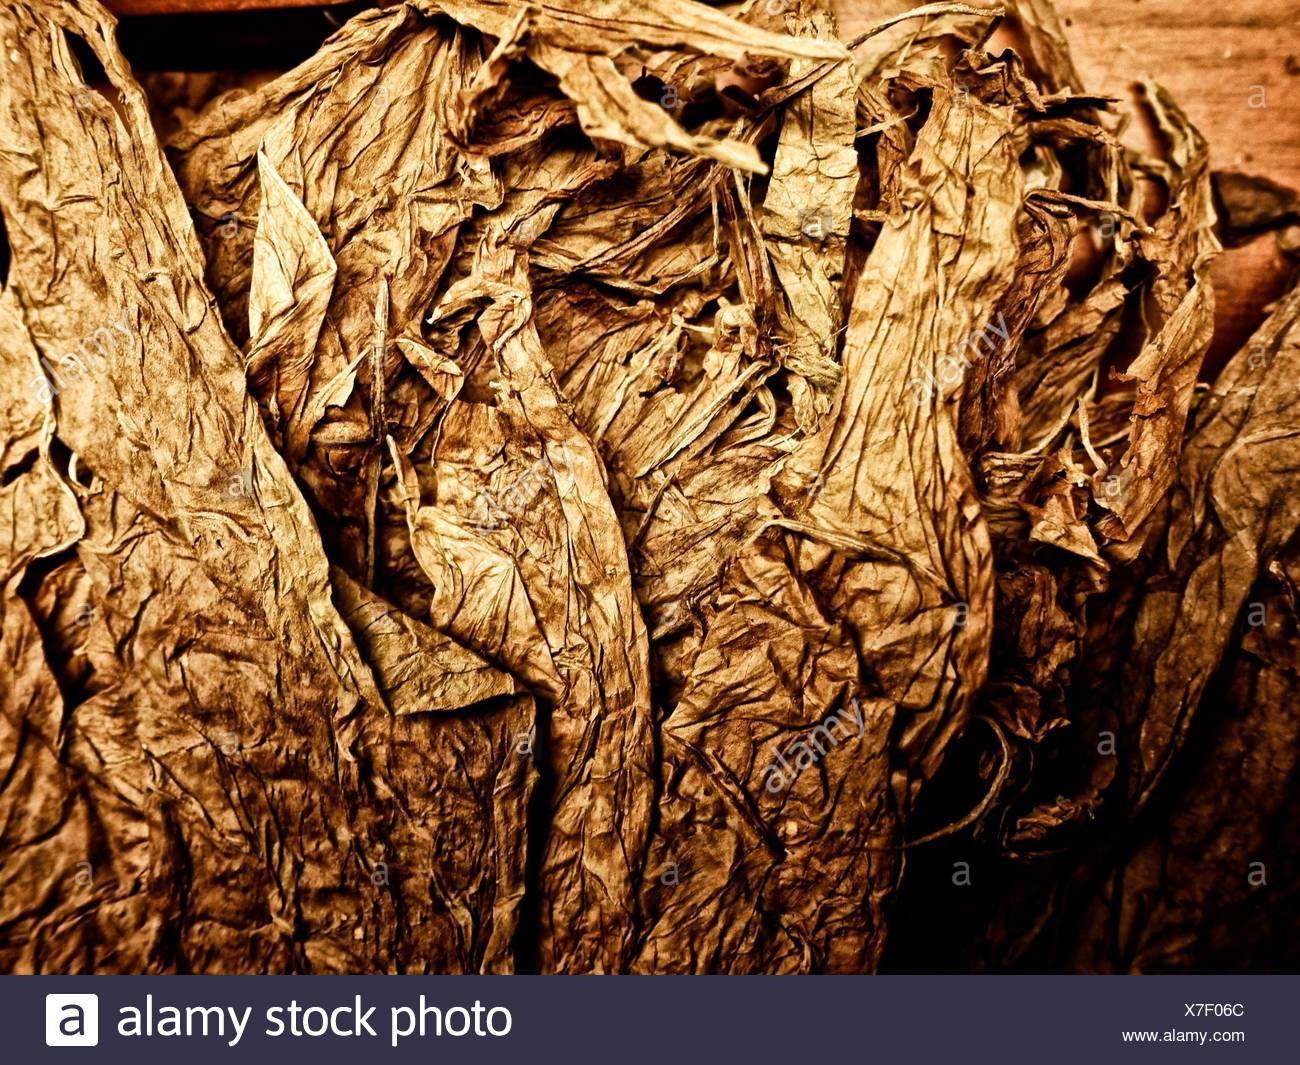 Dry tobacco leaves. - Stock Image